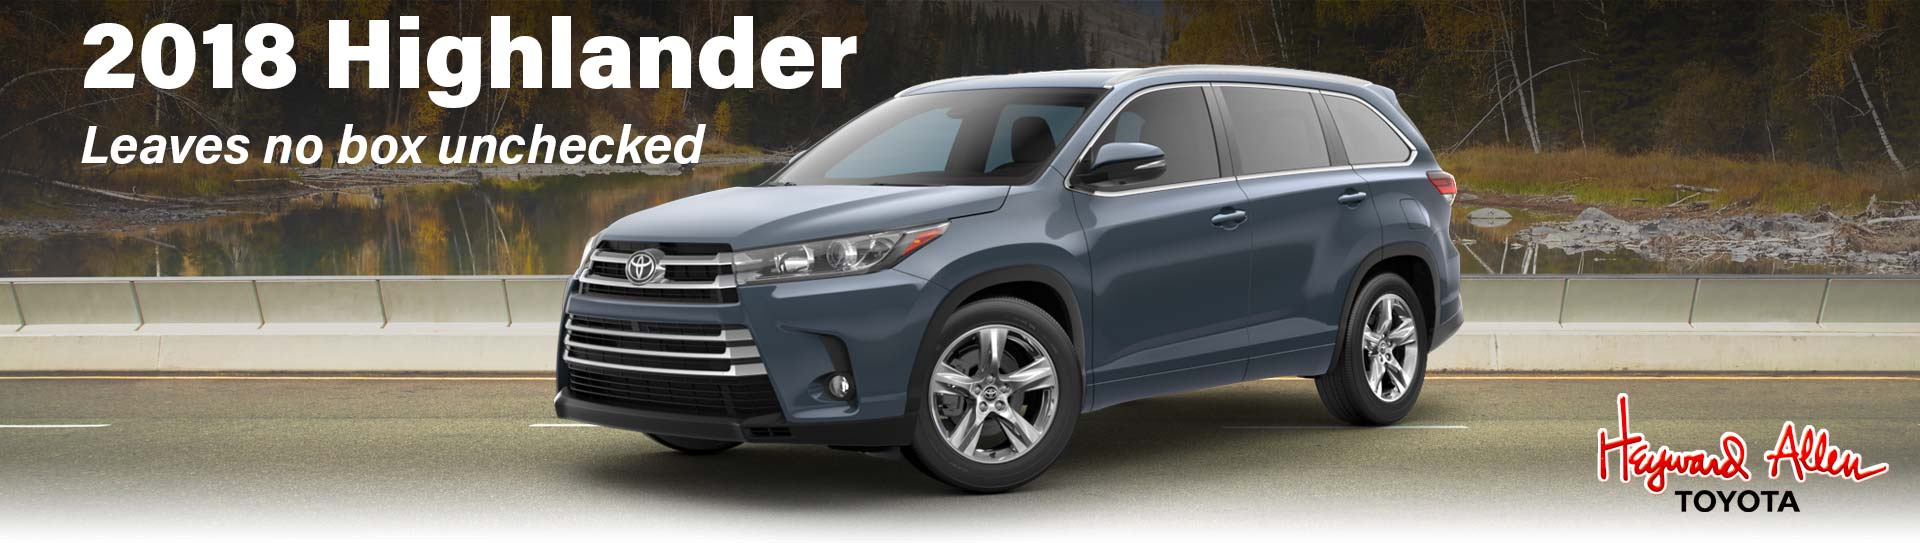 2018 Toyota Highlander comparison